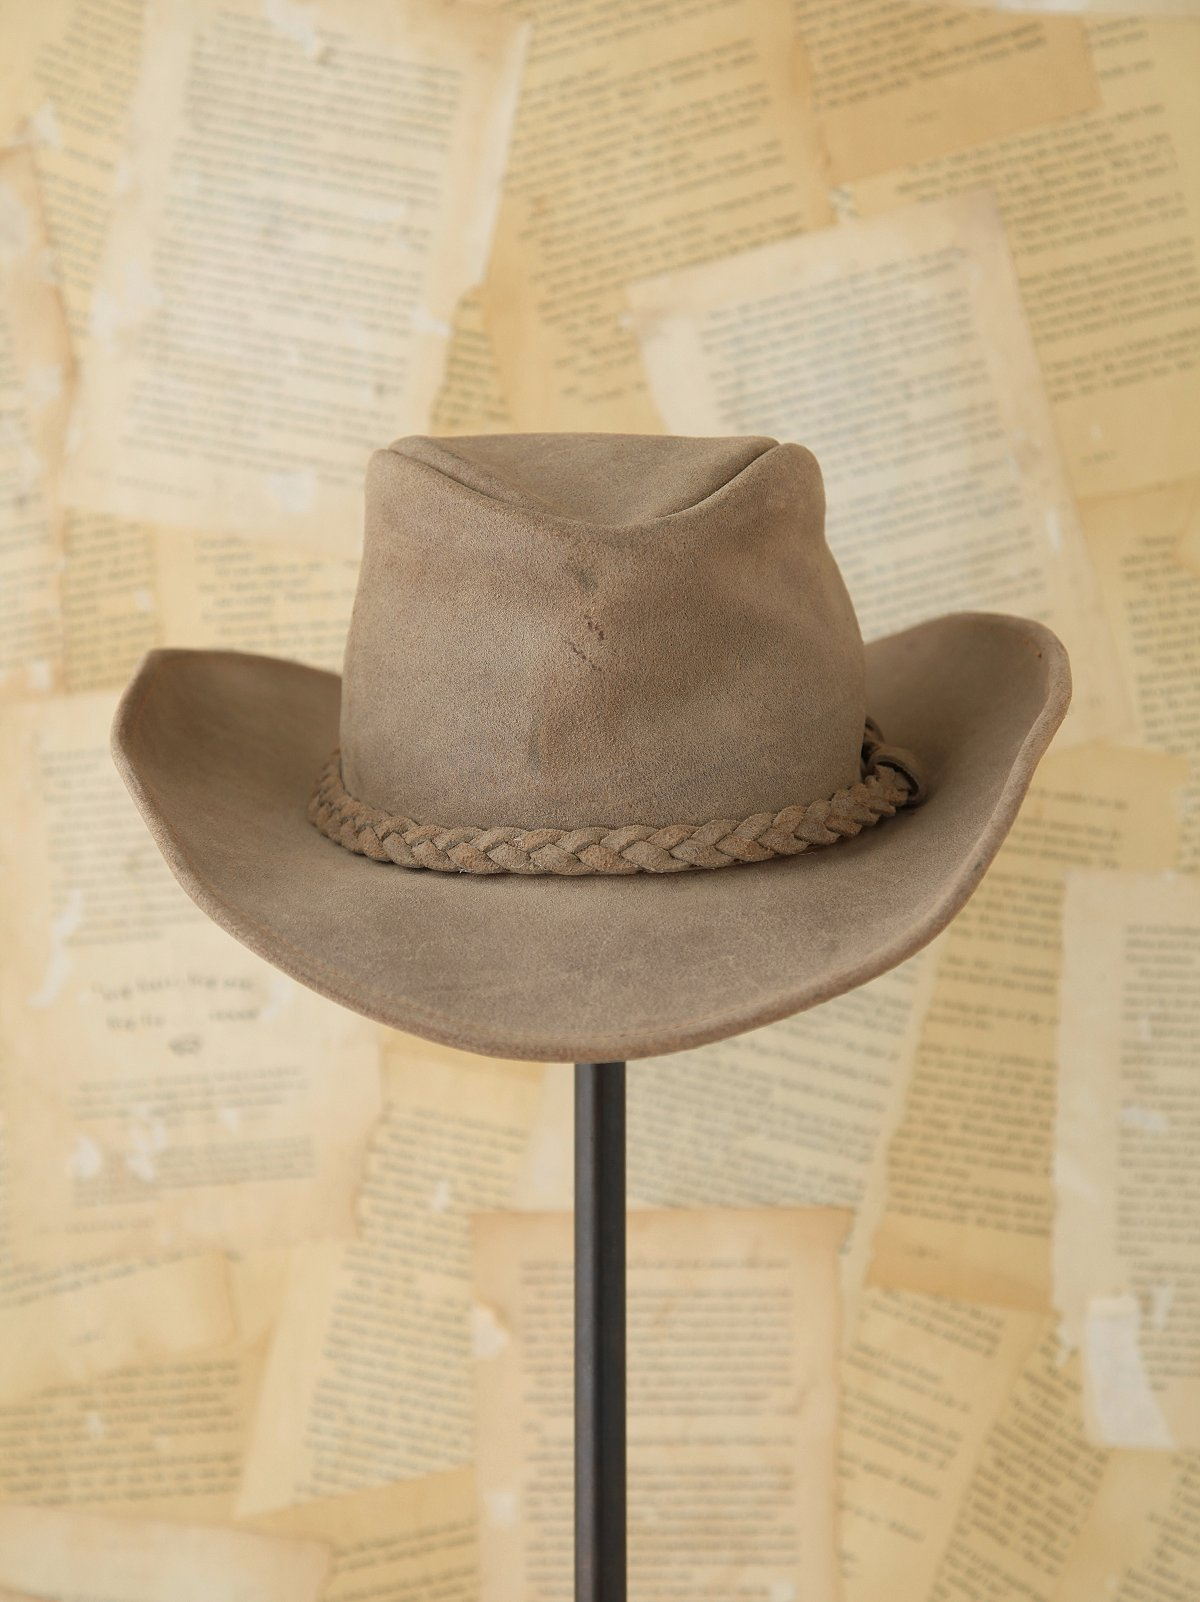 Vintage 1970s Distressed Leather Hat